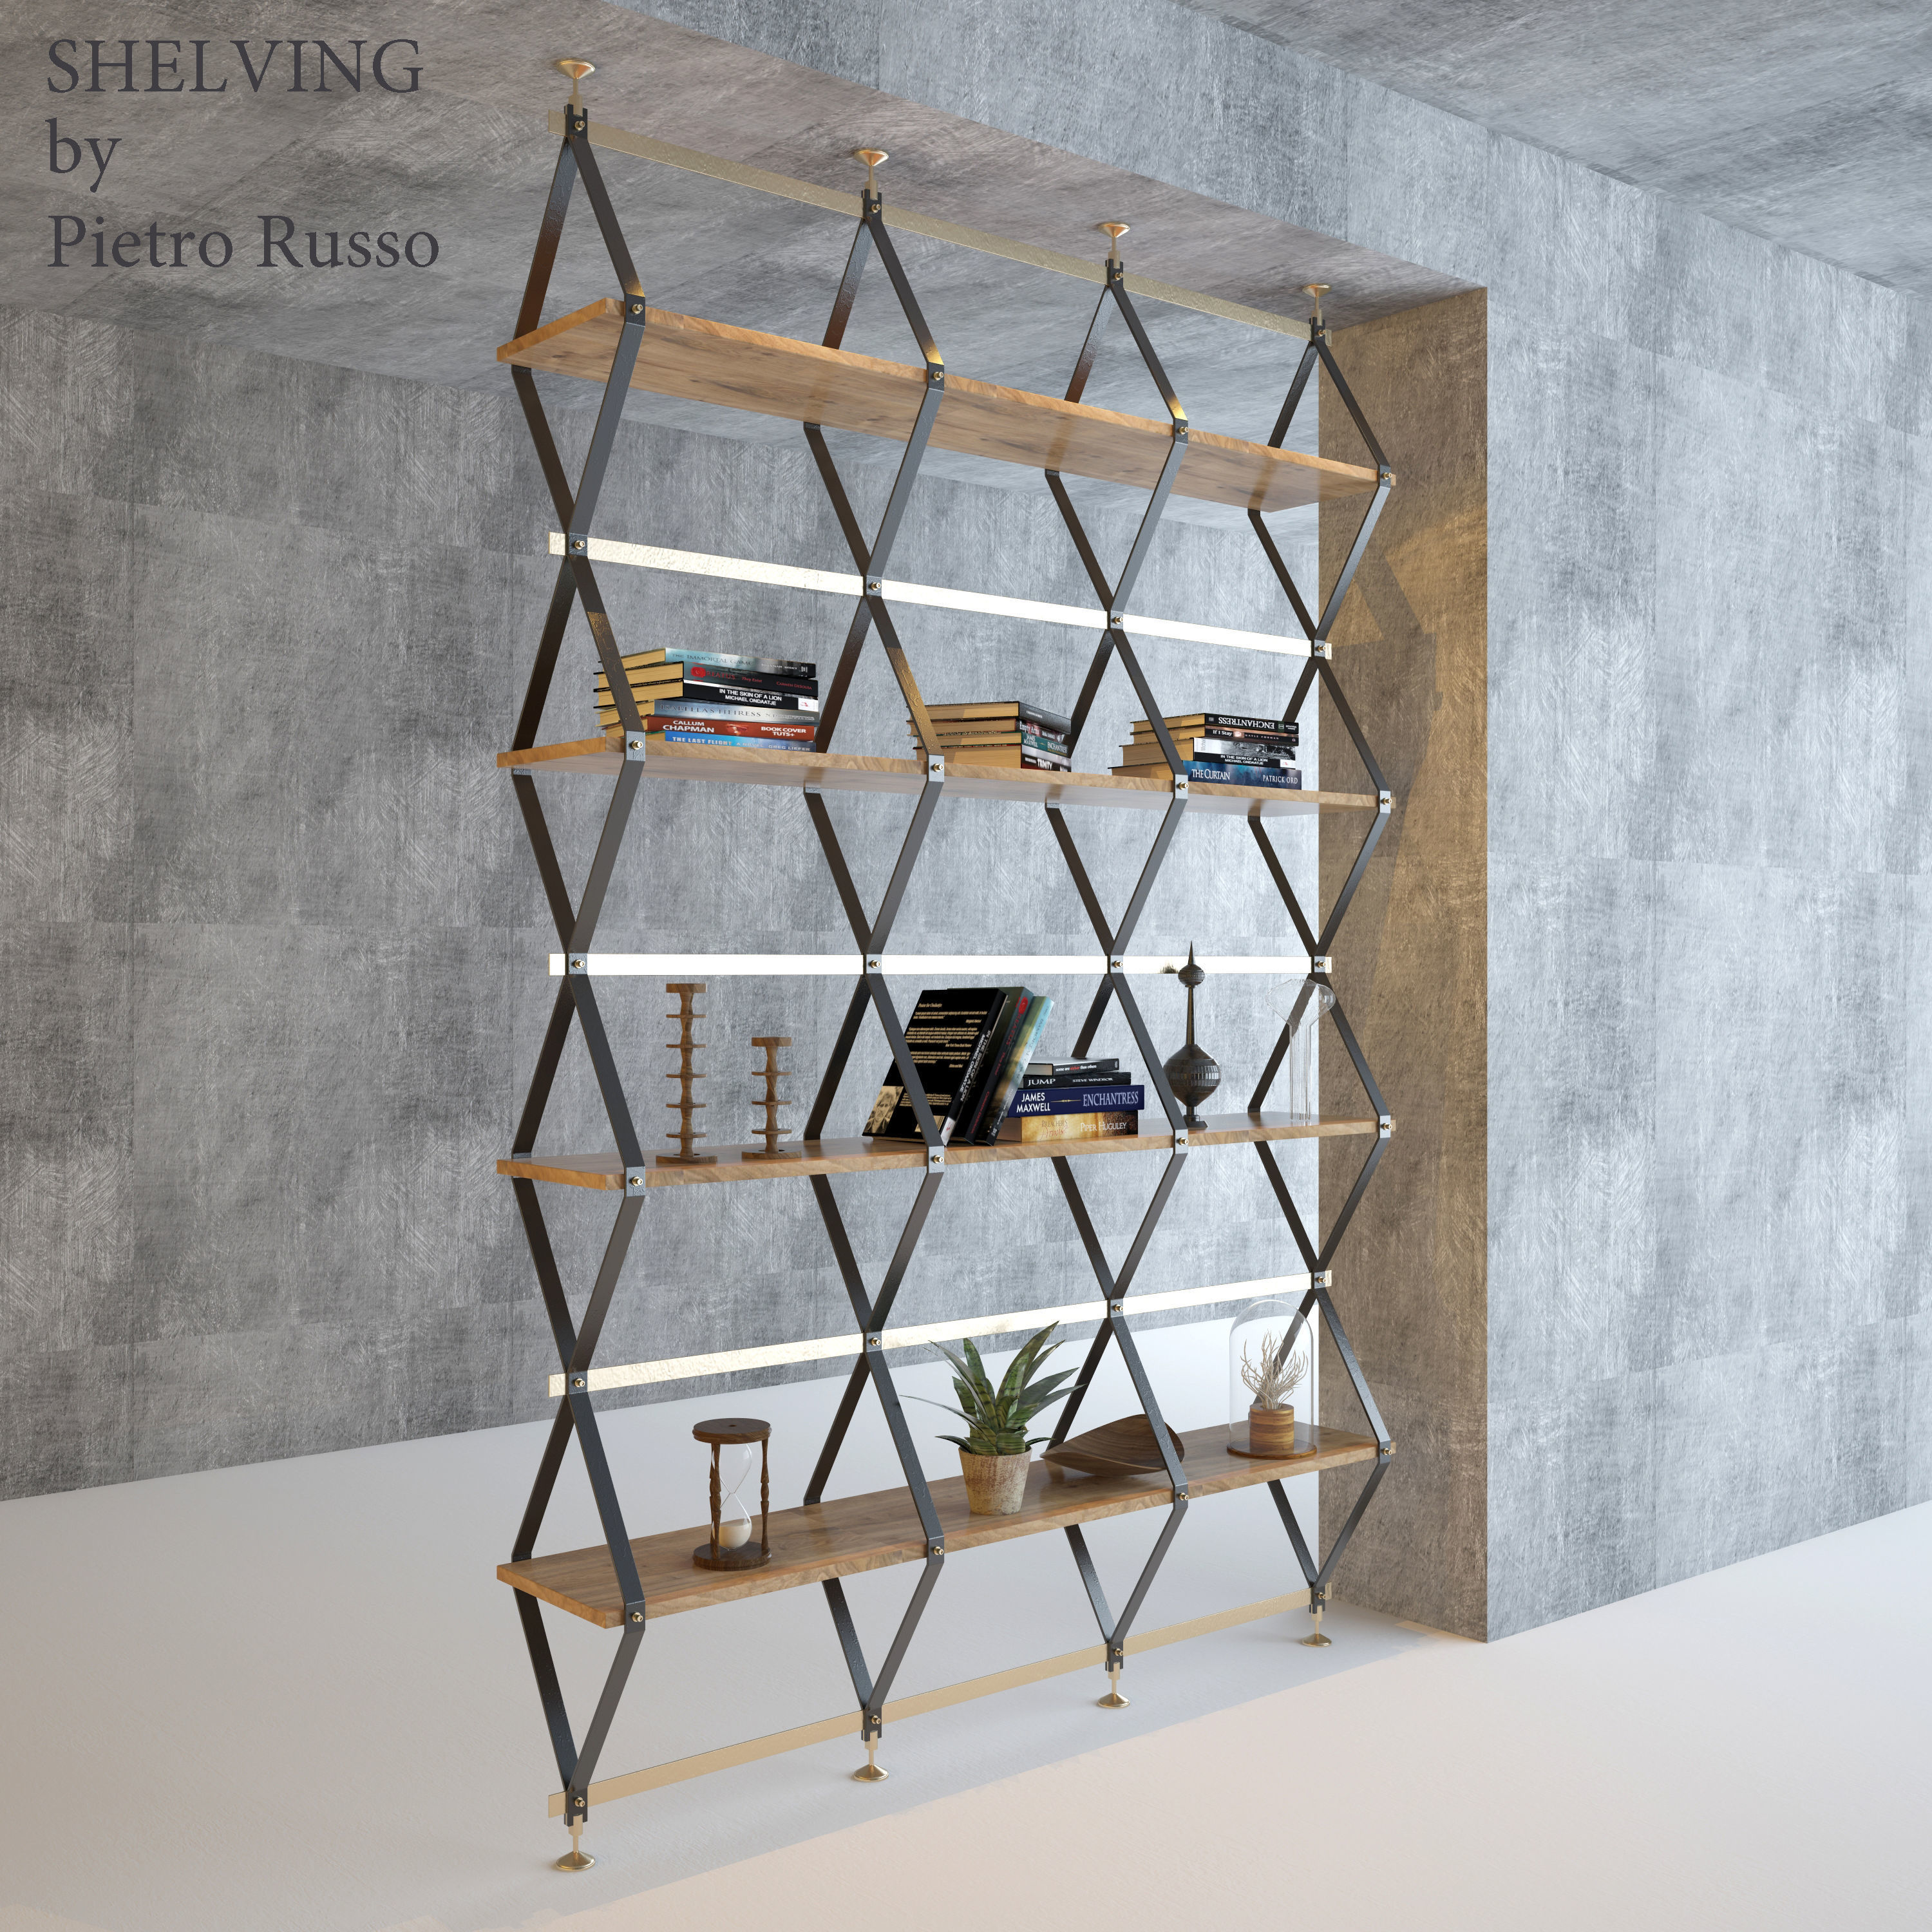 Shelving by Pietro Russo